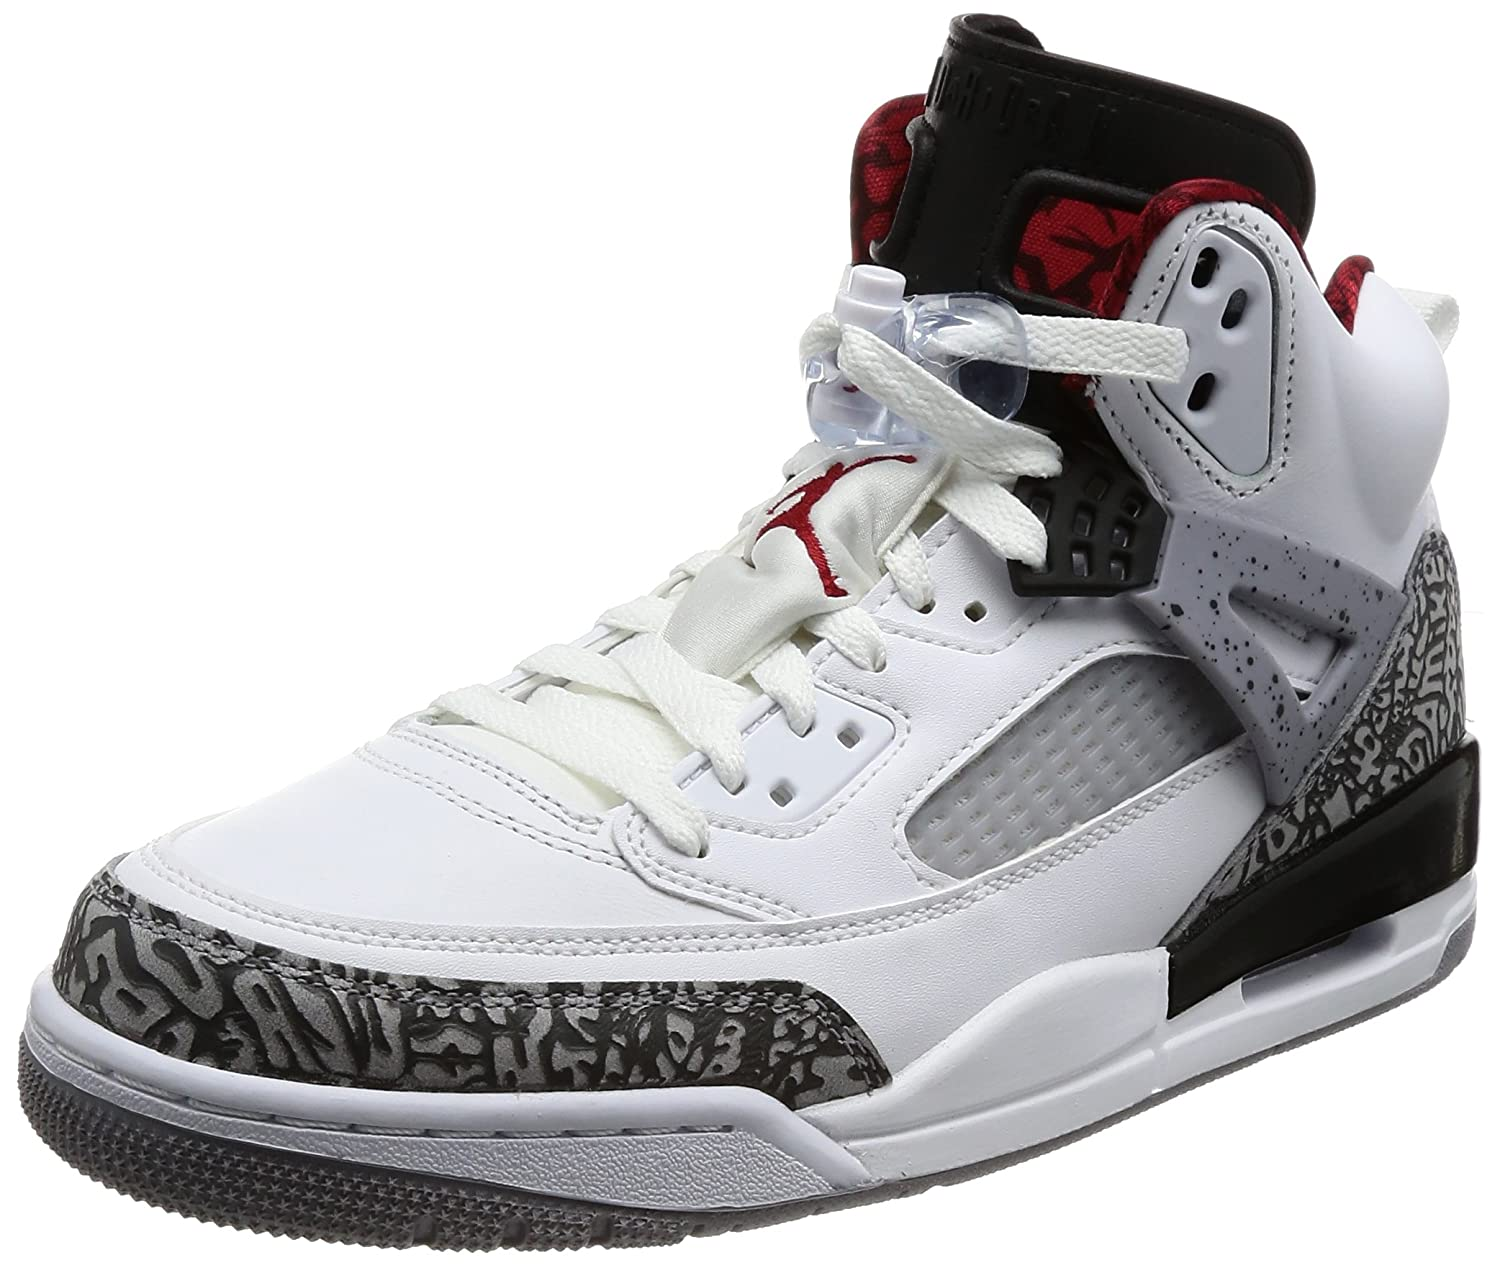 Nike Men\u0027s Spizike Basketball Shoe